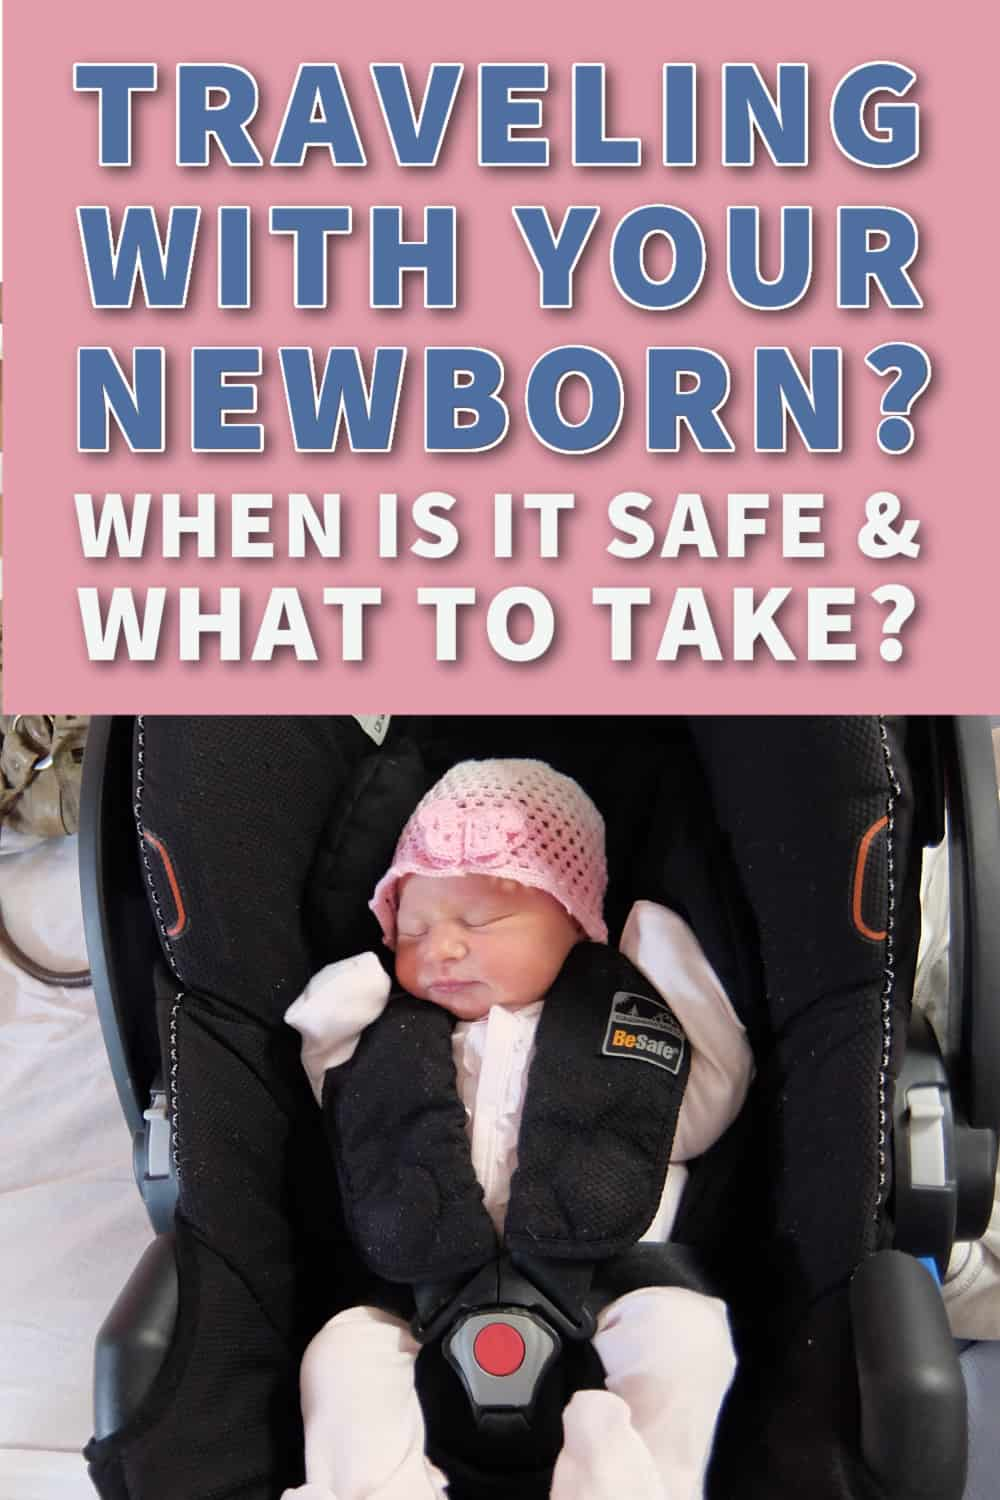 when is it safe to travel with a newborn by plane or car feature image